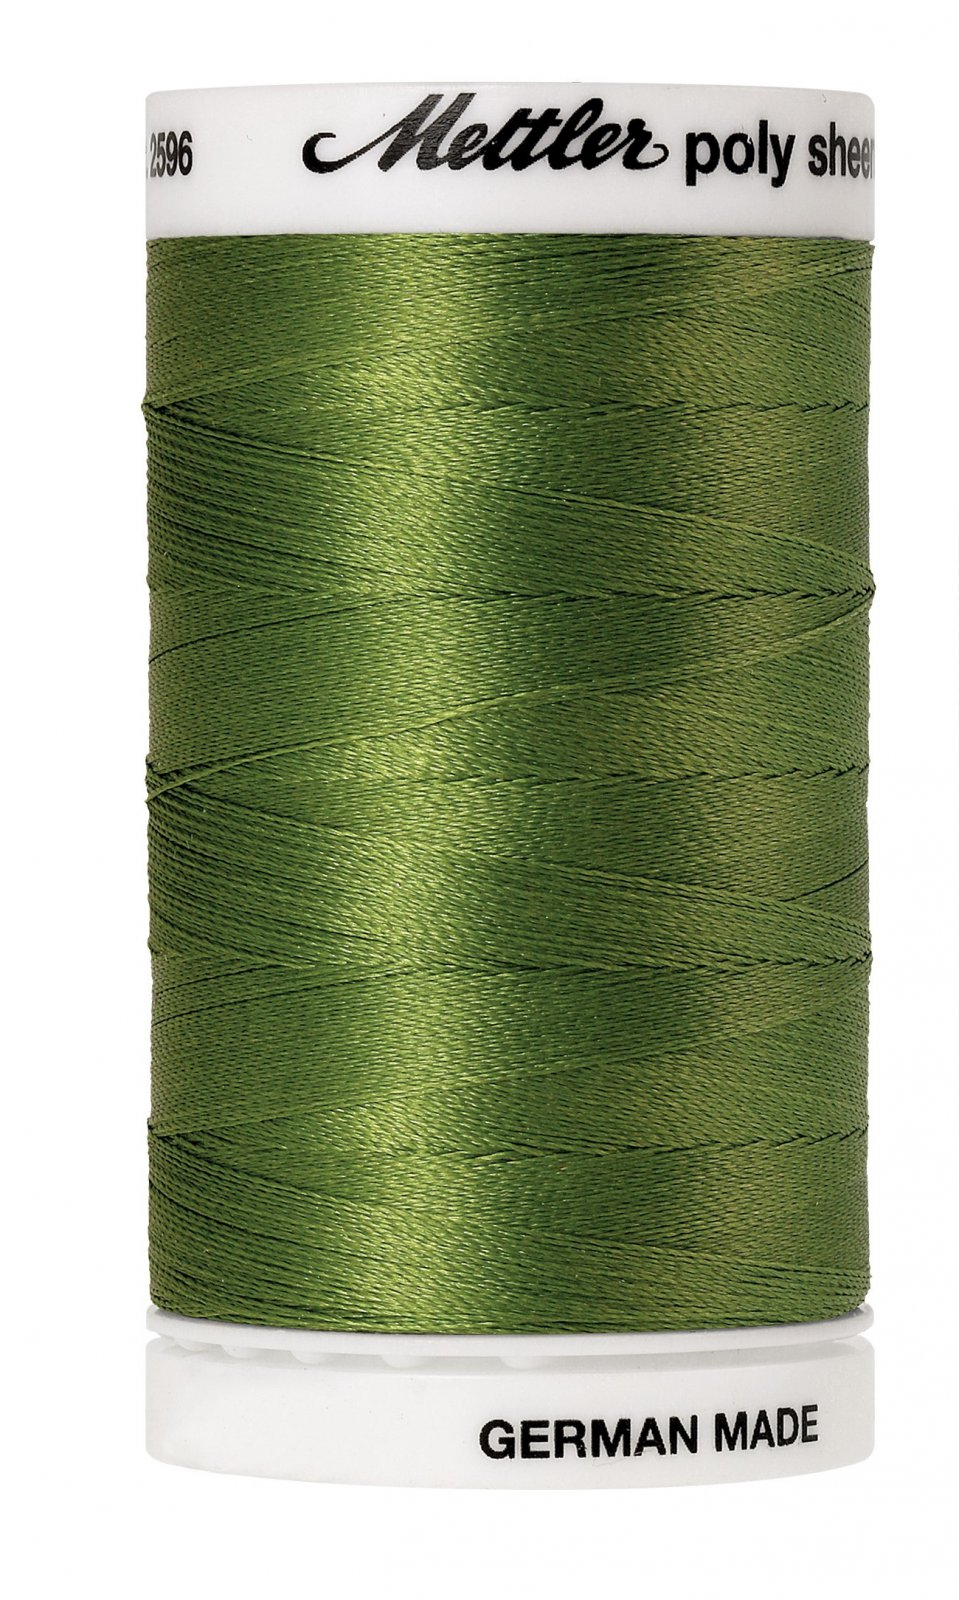 Poly Sheen Polyester Embroidery Thread 40wt 140d 800m/875yds Lima Bean